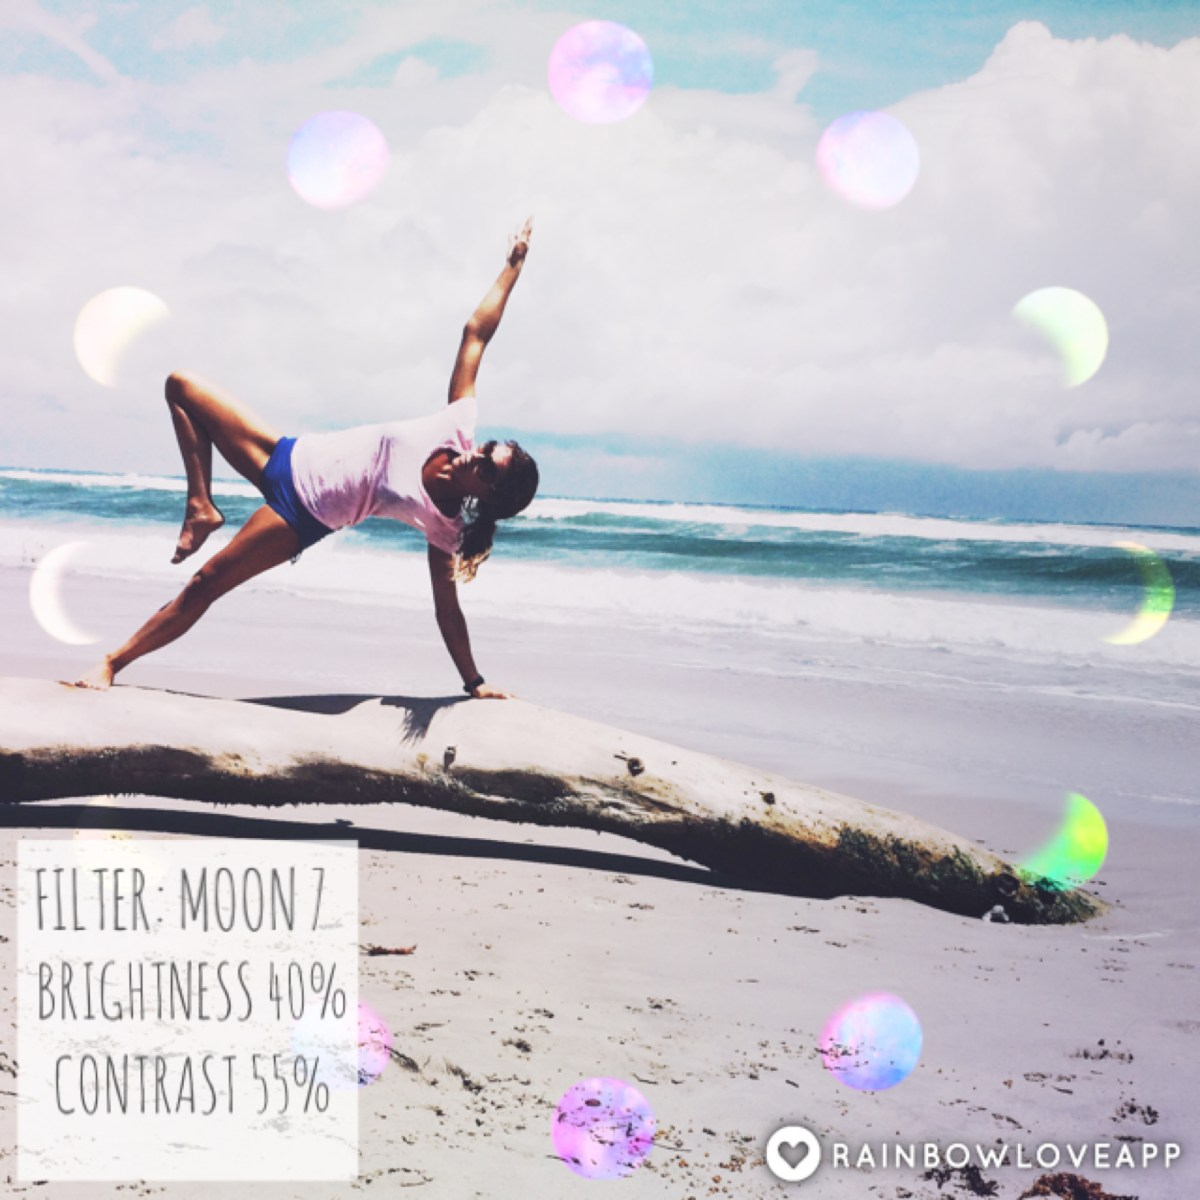 rainbow-love-app-moon-phase-photo-filter-filters-for-yoga-photos-1